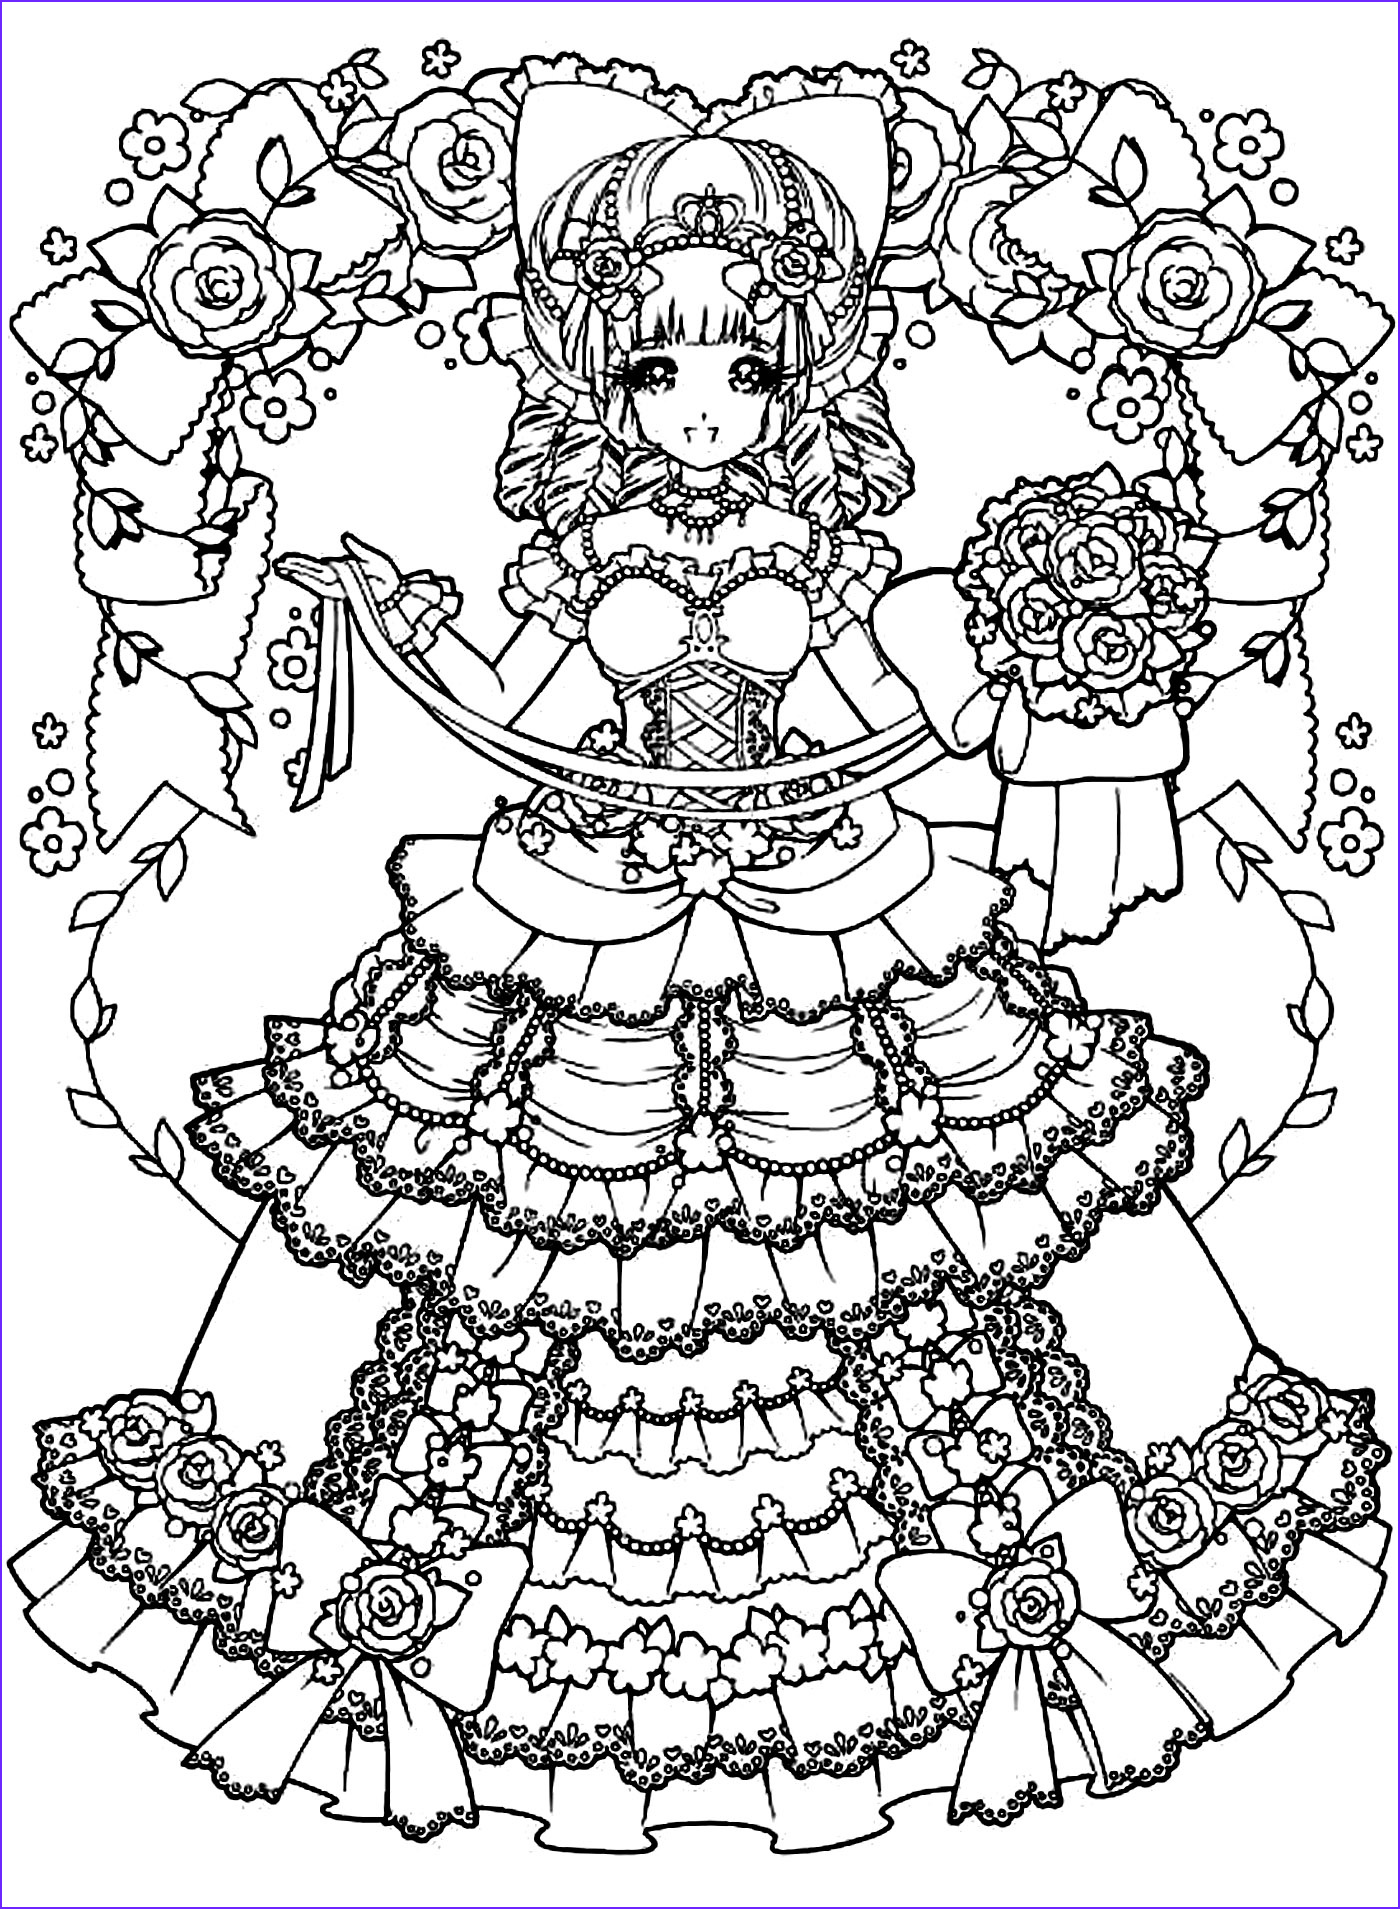 Anime Coloring Pages for Adults Luxury Collection Back to Childhood Manga Girl Dress Manga Anime Adult